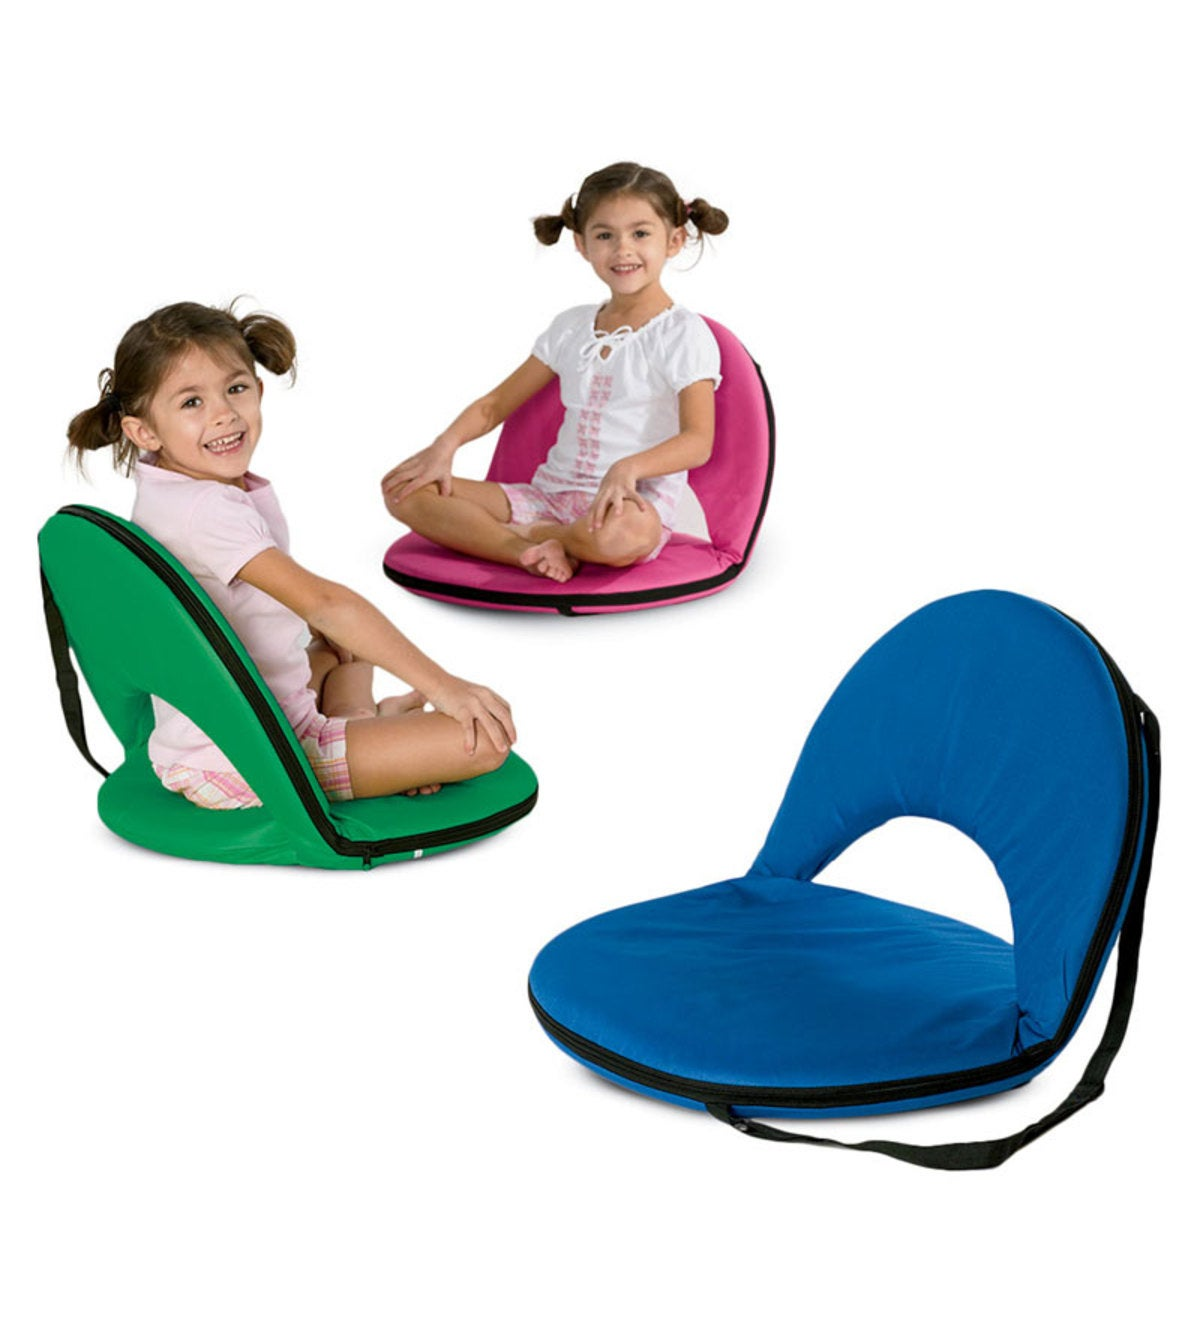 5-Position Folding Chairs